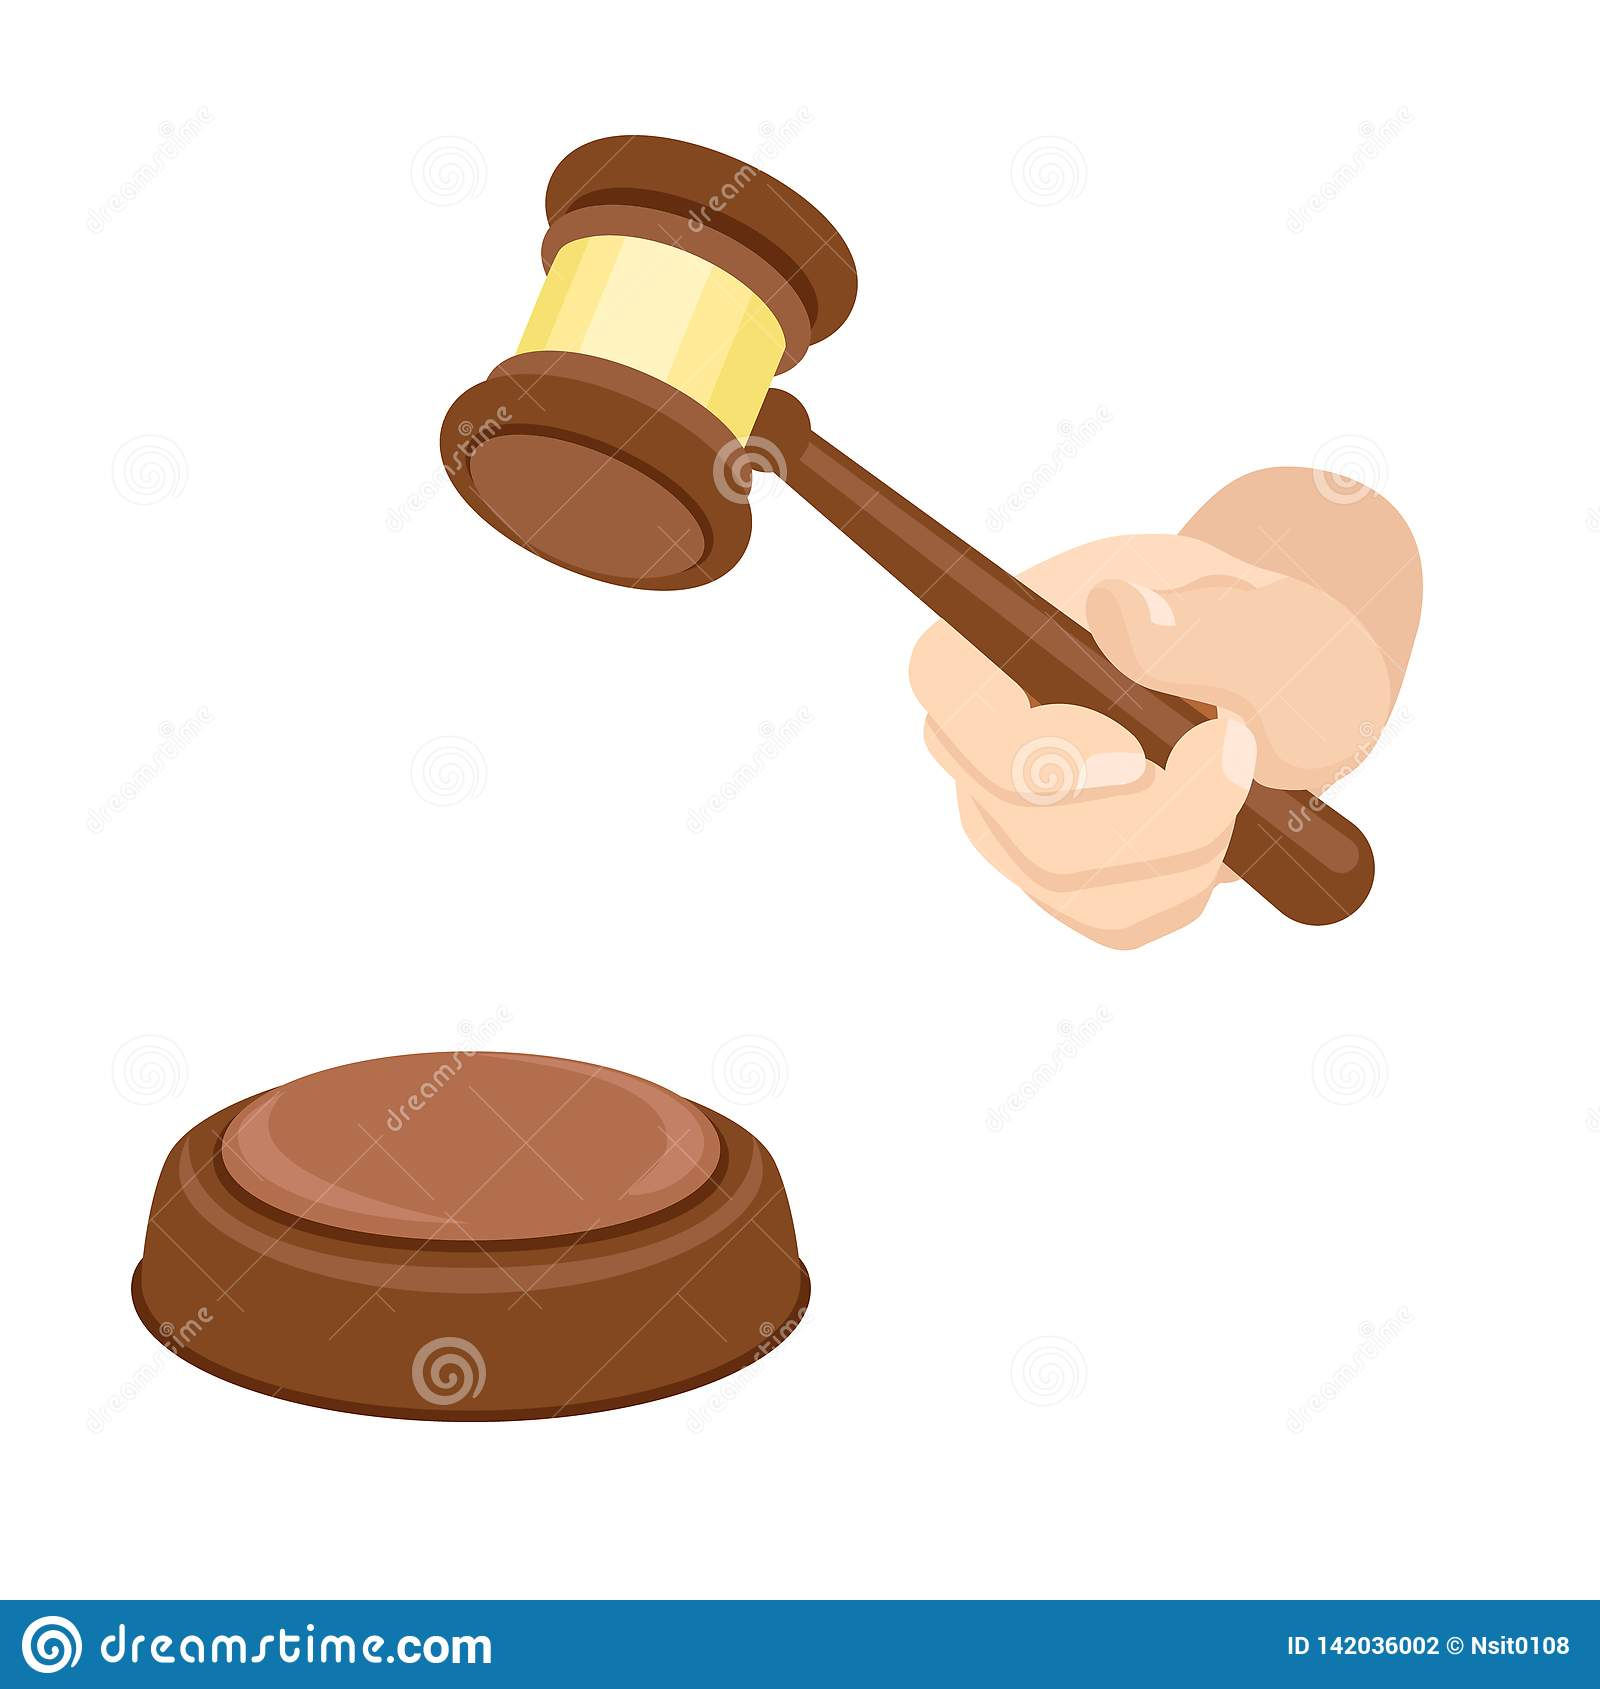 Wood Gavel Icon Flat Style Stock Vector Illustration Of Gavel